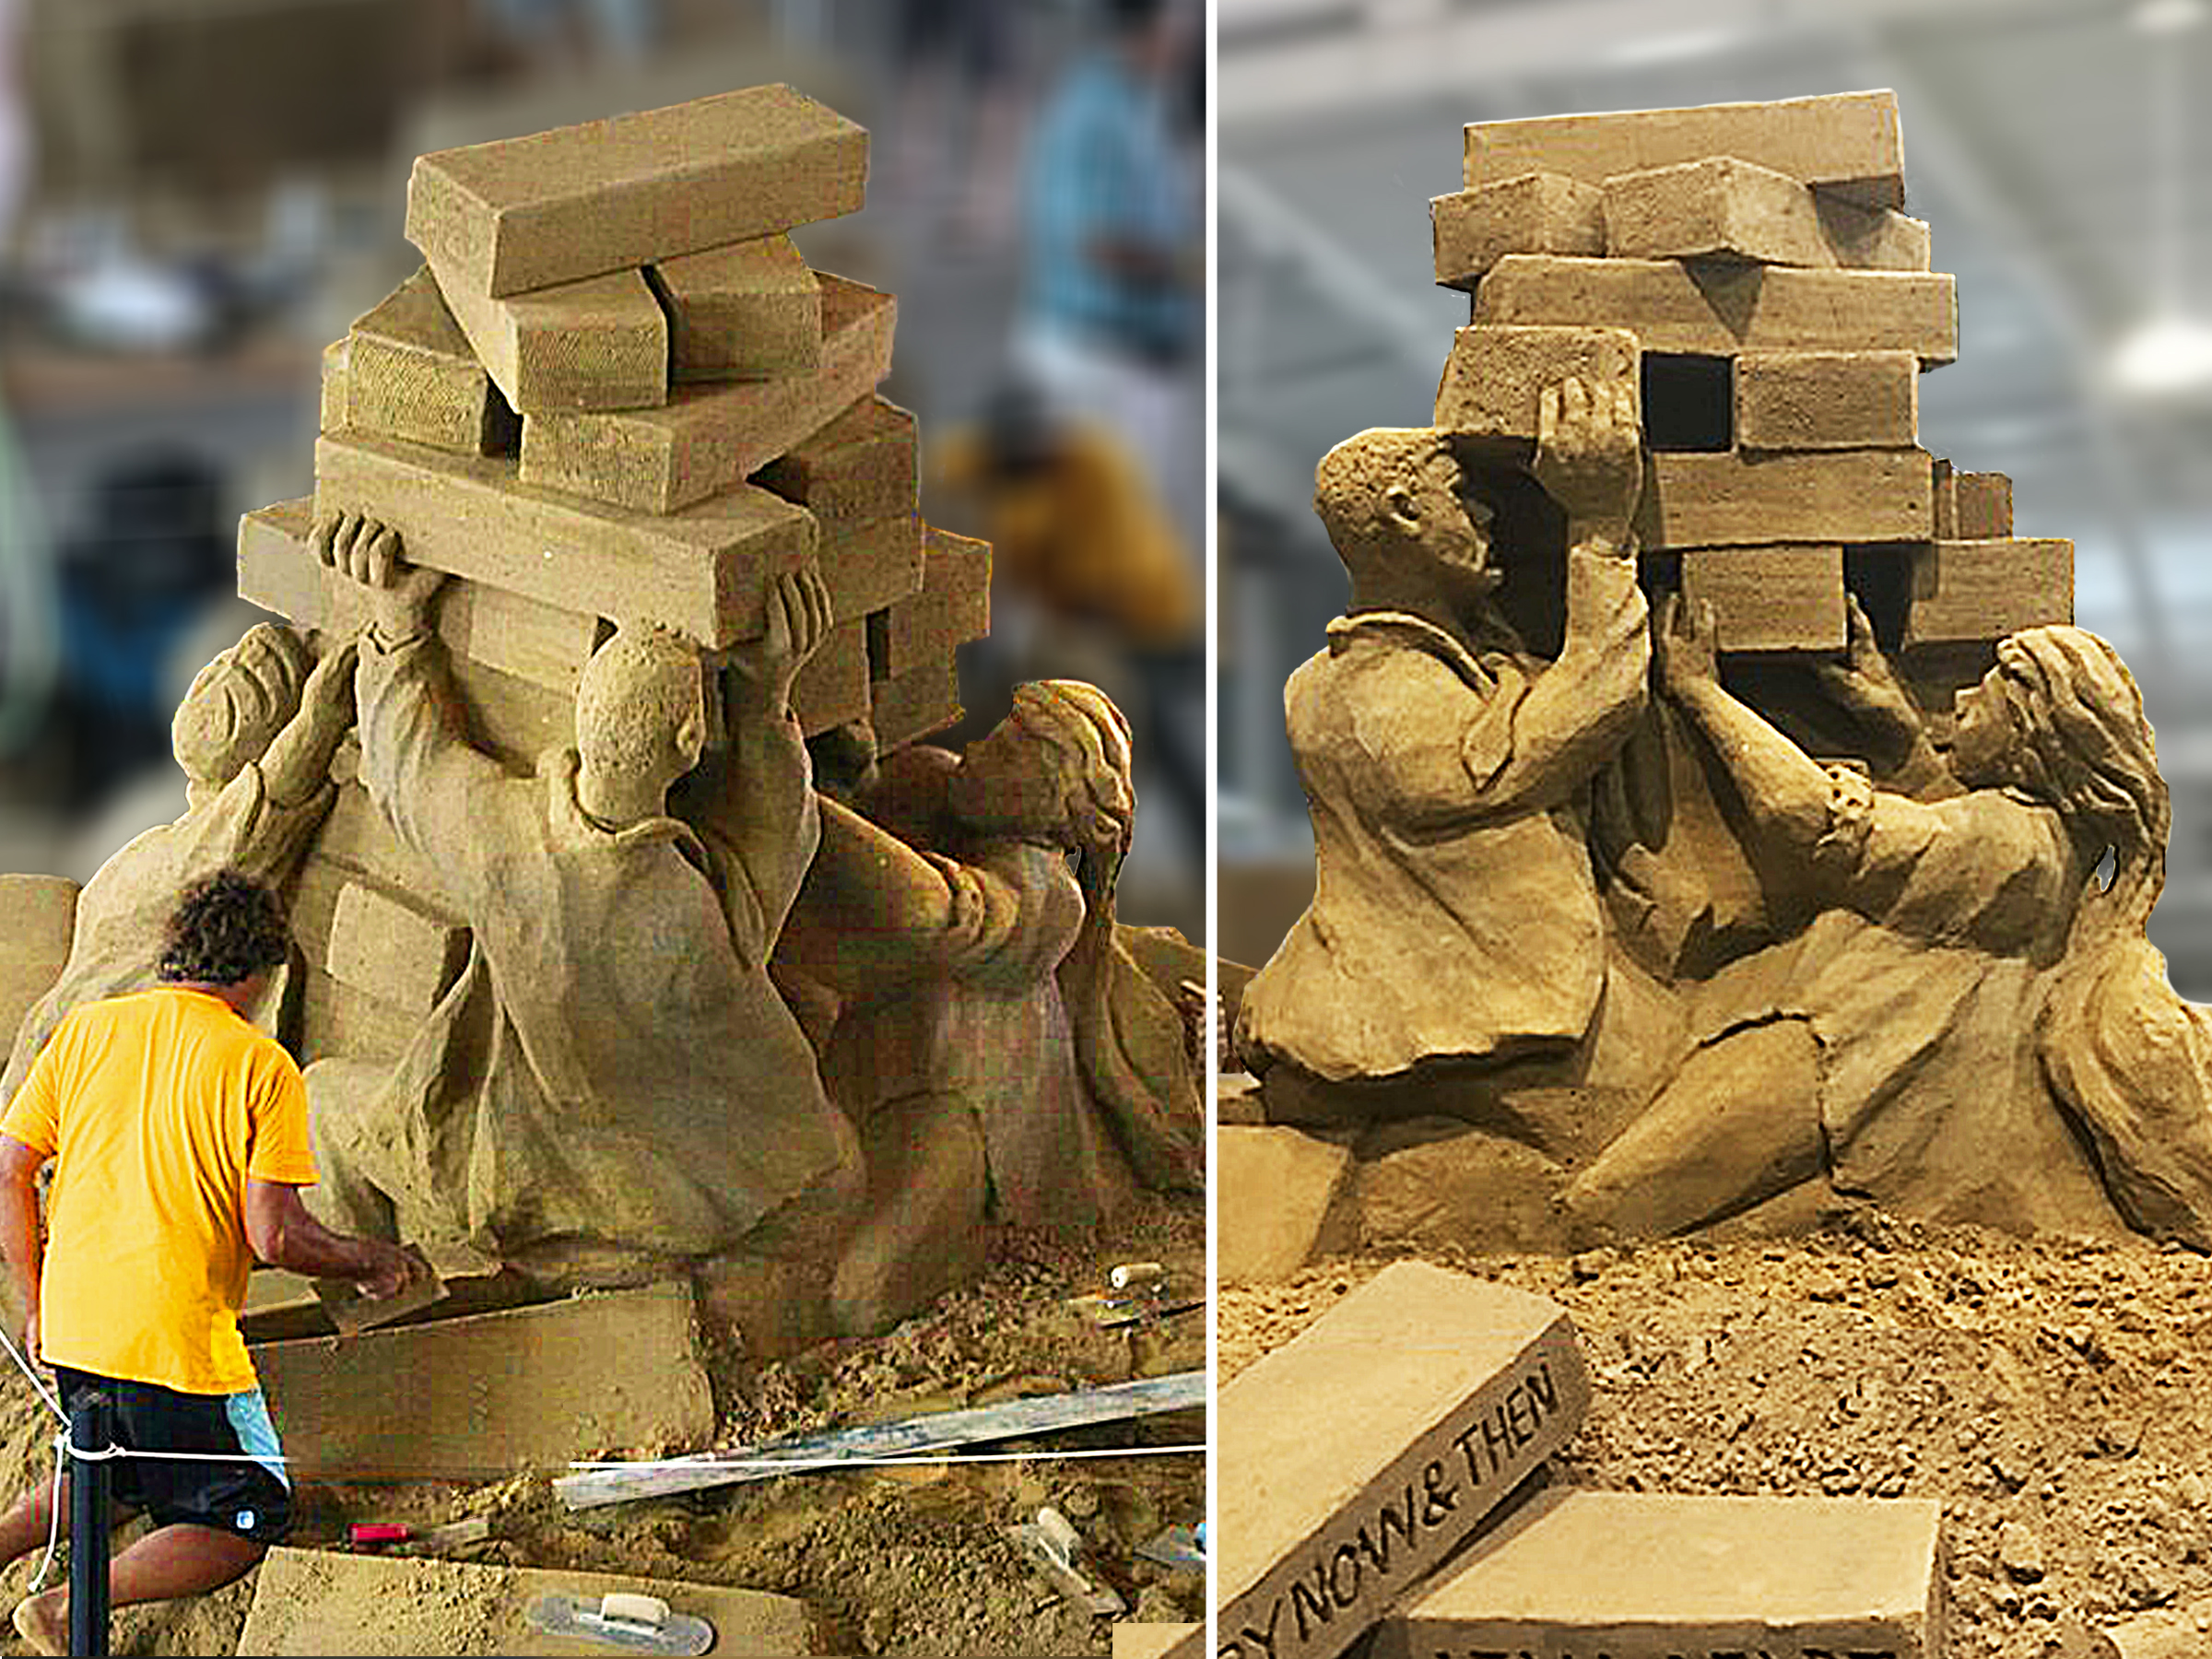 https://ussandsculpting.com/wp-content/uploads/2018/04/frame-18-Every-NowThen-Jenga..jpg